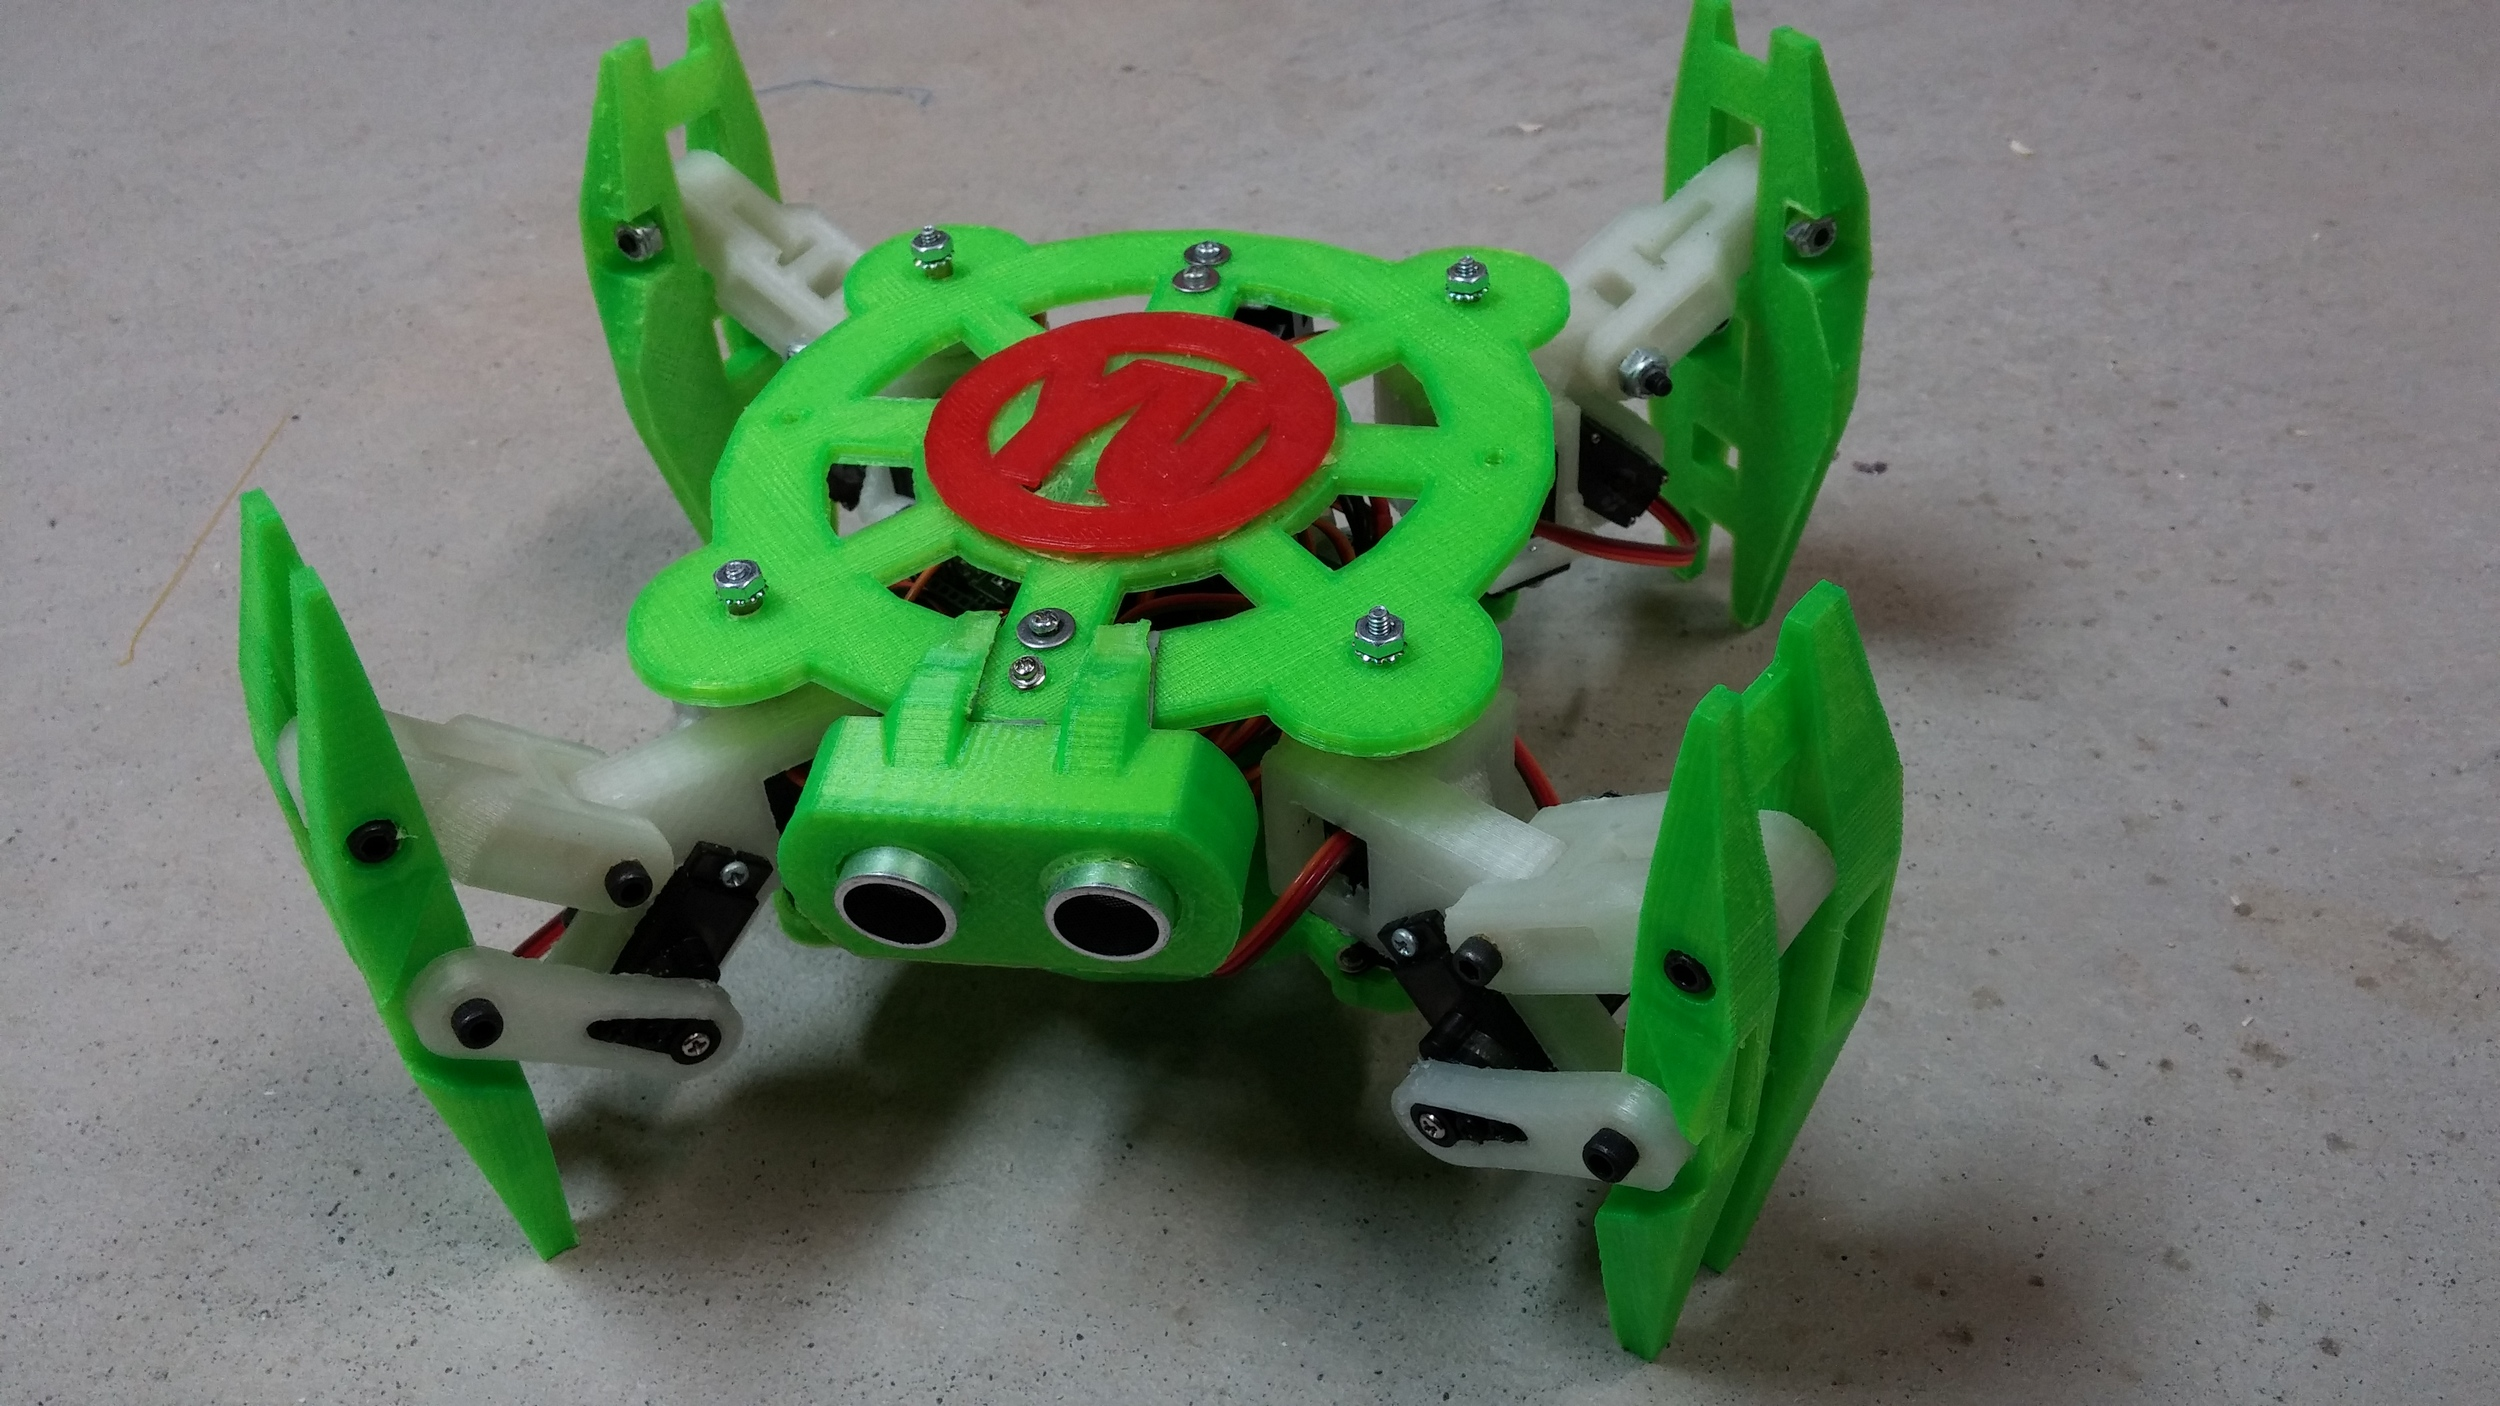 Quad -  http://www.thingiverse.com/thing:152638